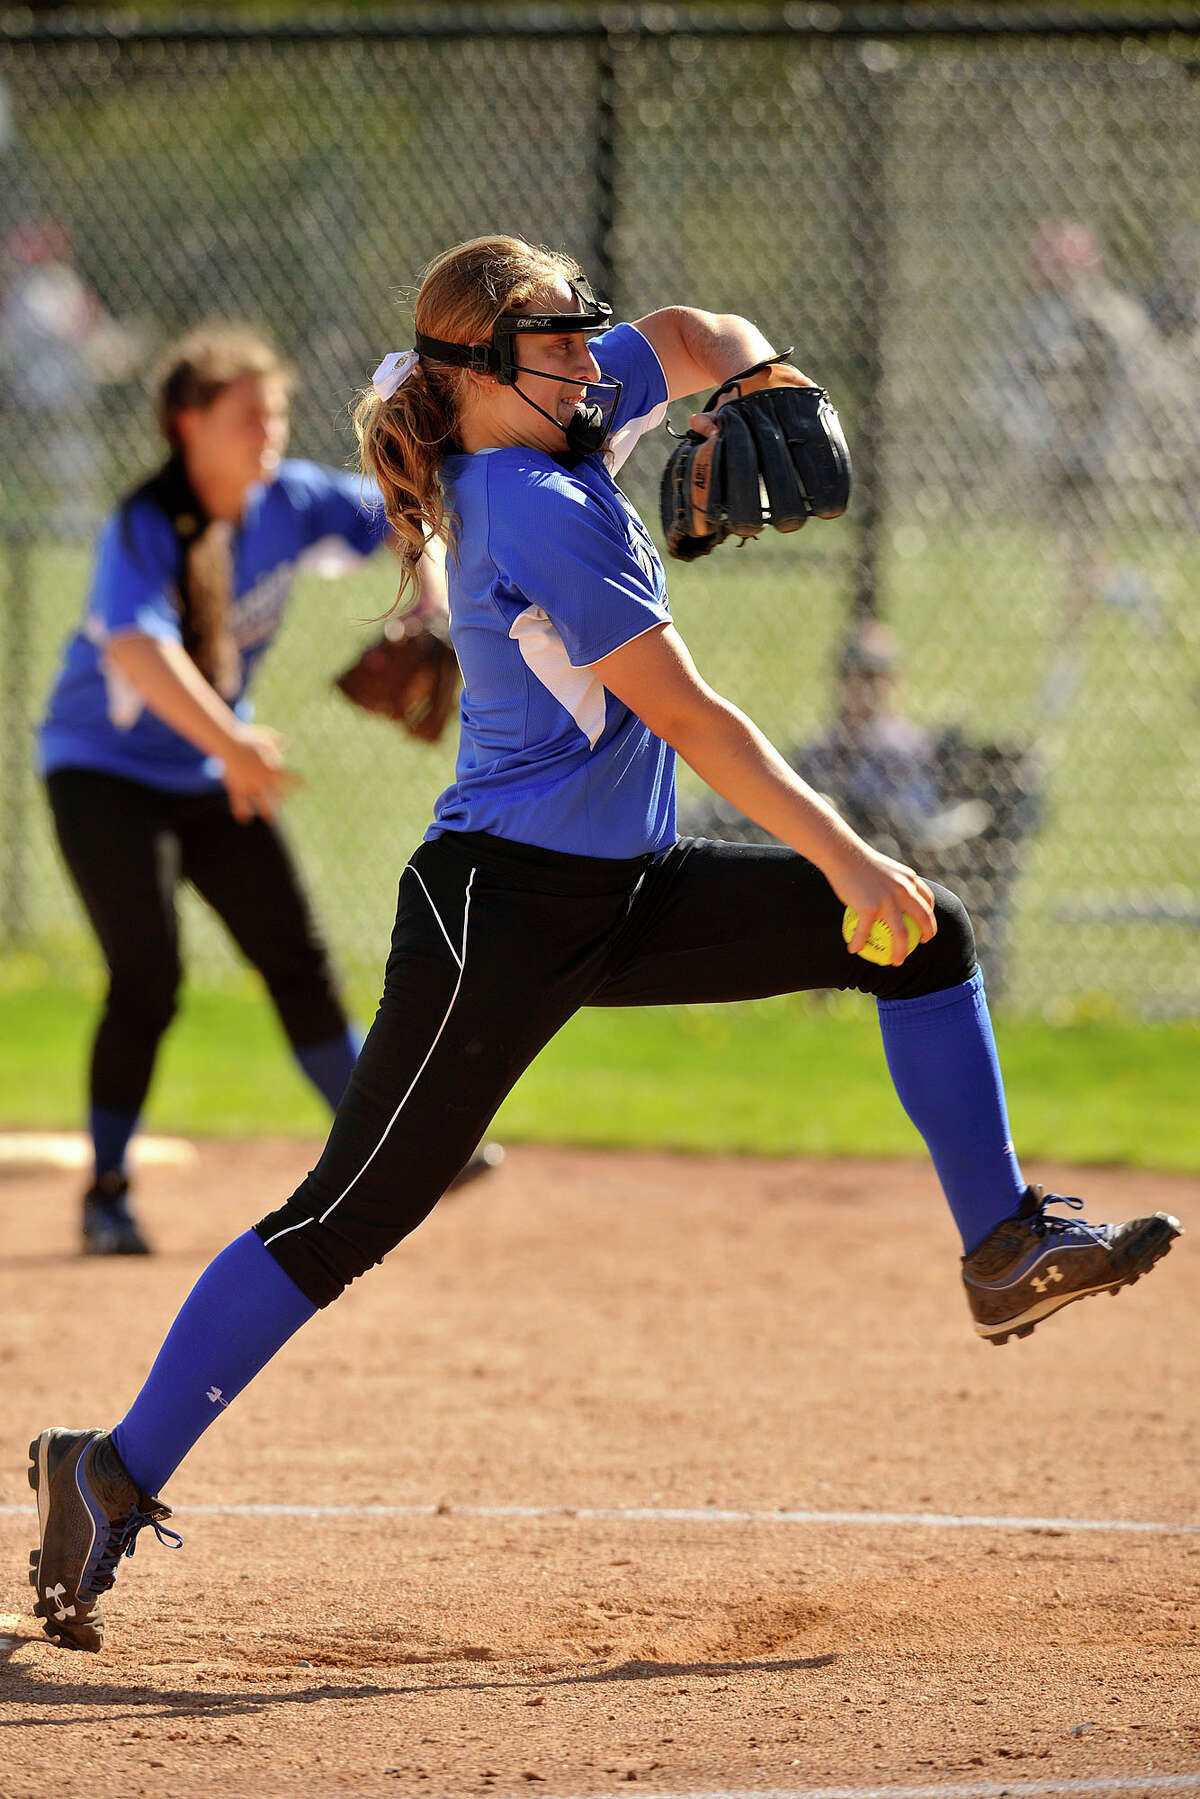 Erika Osherow was the starting pitcher for Darien during the Blue Wave's game against Greenwich at Greenwich High School in Greenwich, Conn., on Monday, May 5, 2014. Darien defeated Greenwich, 6-0.